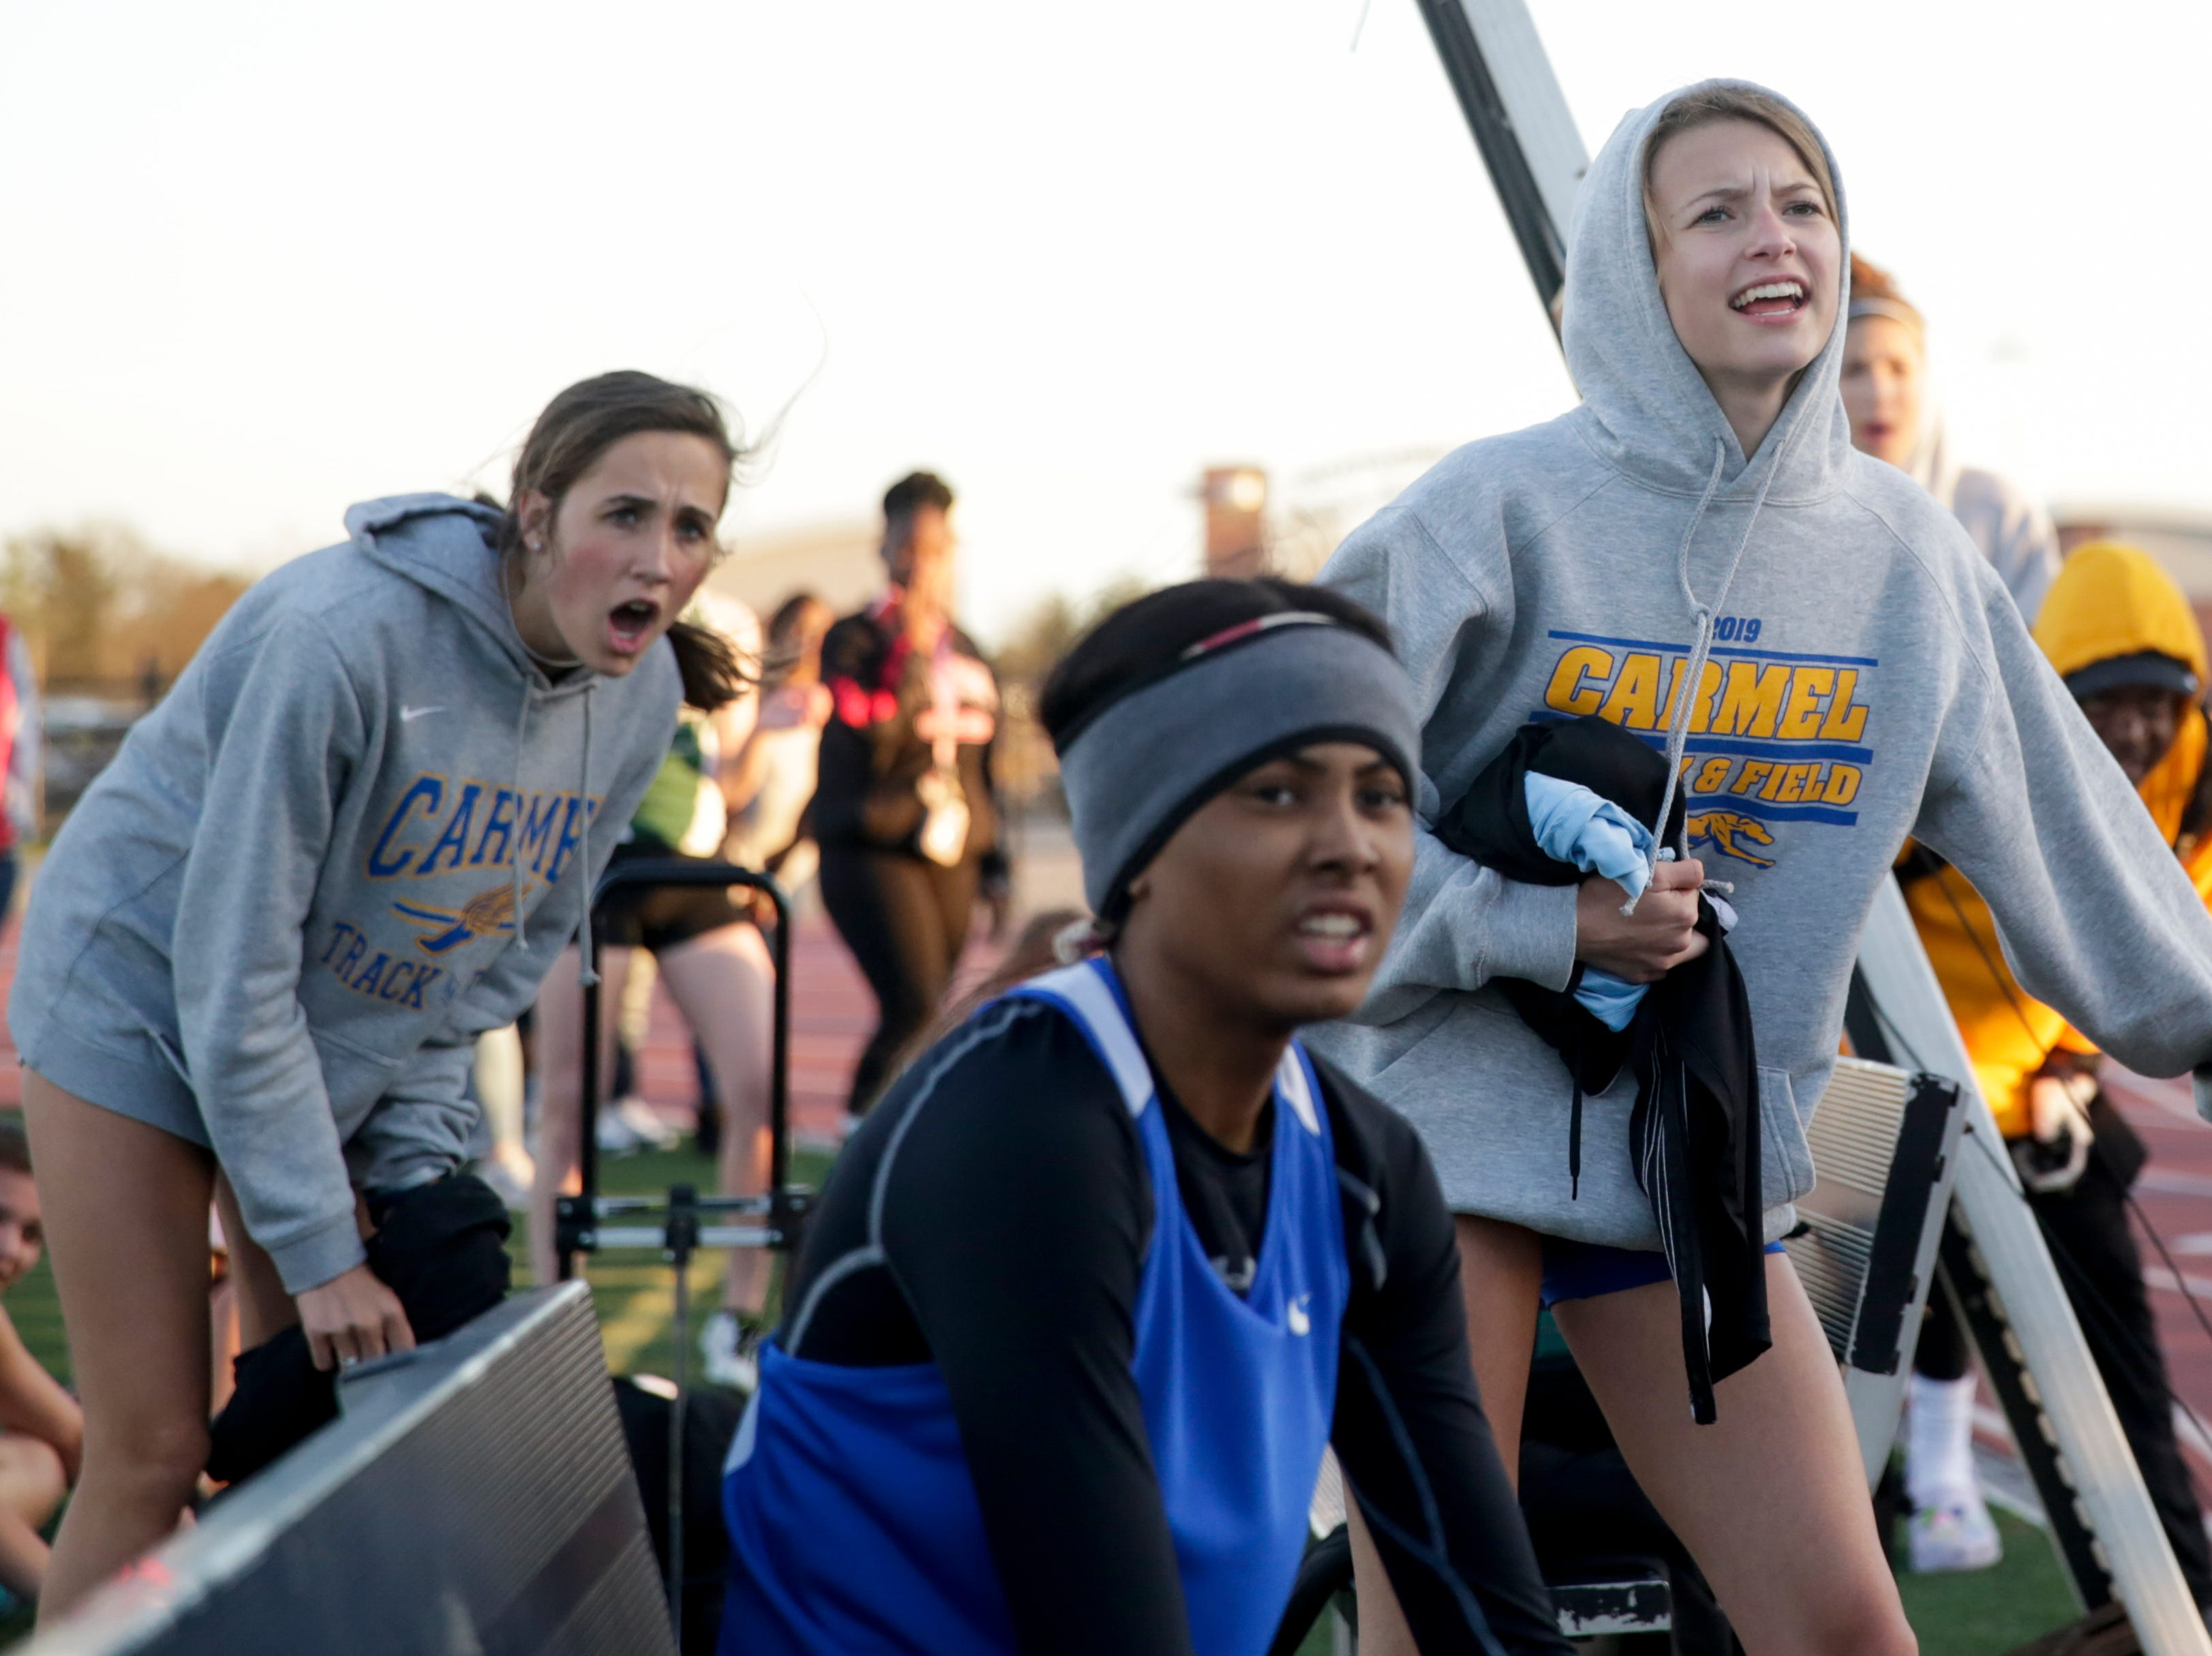 Competitors cheer on their teammates as they compete in the women's 4x400 meter relay during the 2019 Sprinters Showcase, Friday, April 12, 2019, at Lafayette Jeff High School in Lafayette.